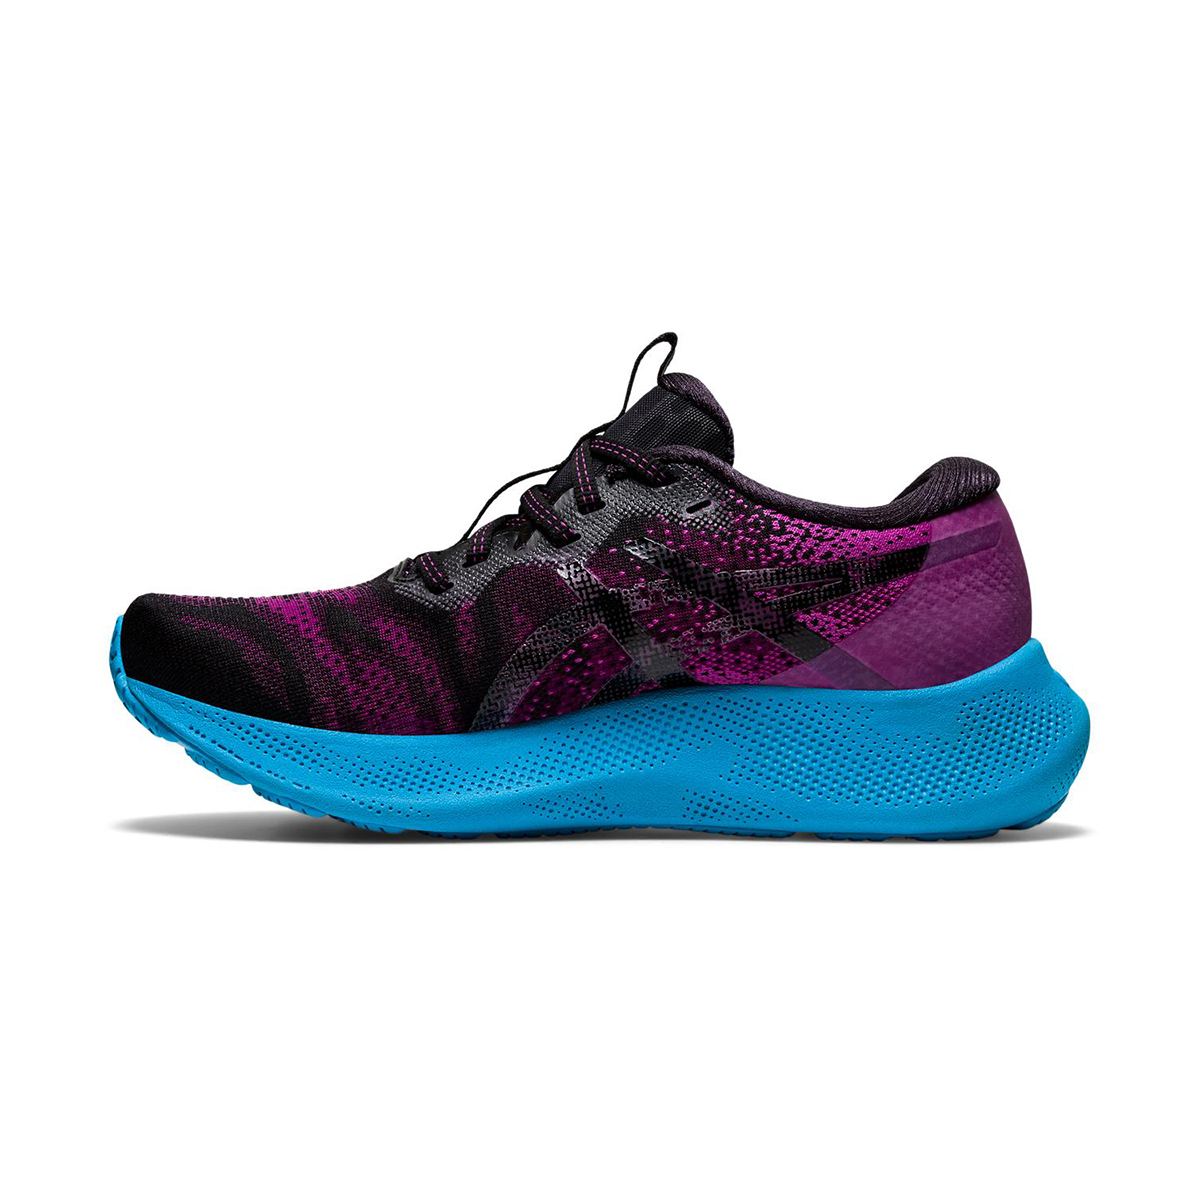 Women's Asics Gel-Nimbus Lite 2 Running Shoe - Color: Digital Grape/Black - Size: 5 - Width: Regular, Digital Grape/Black, large, image 2